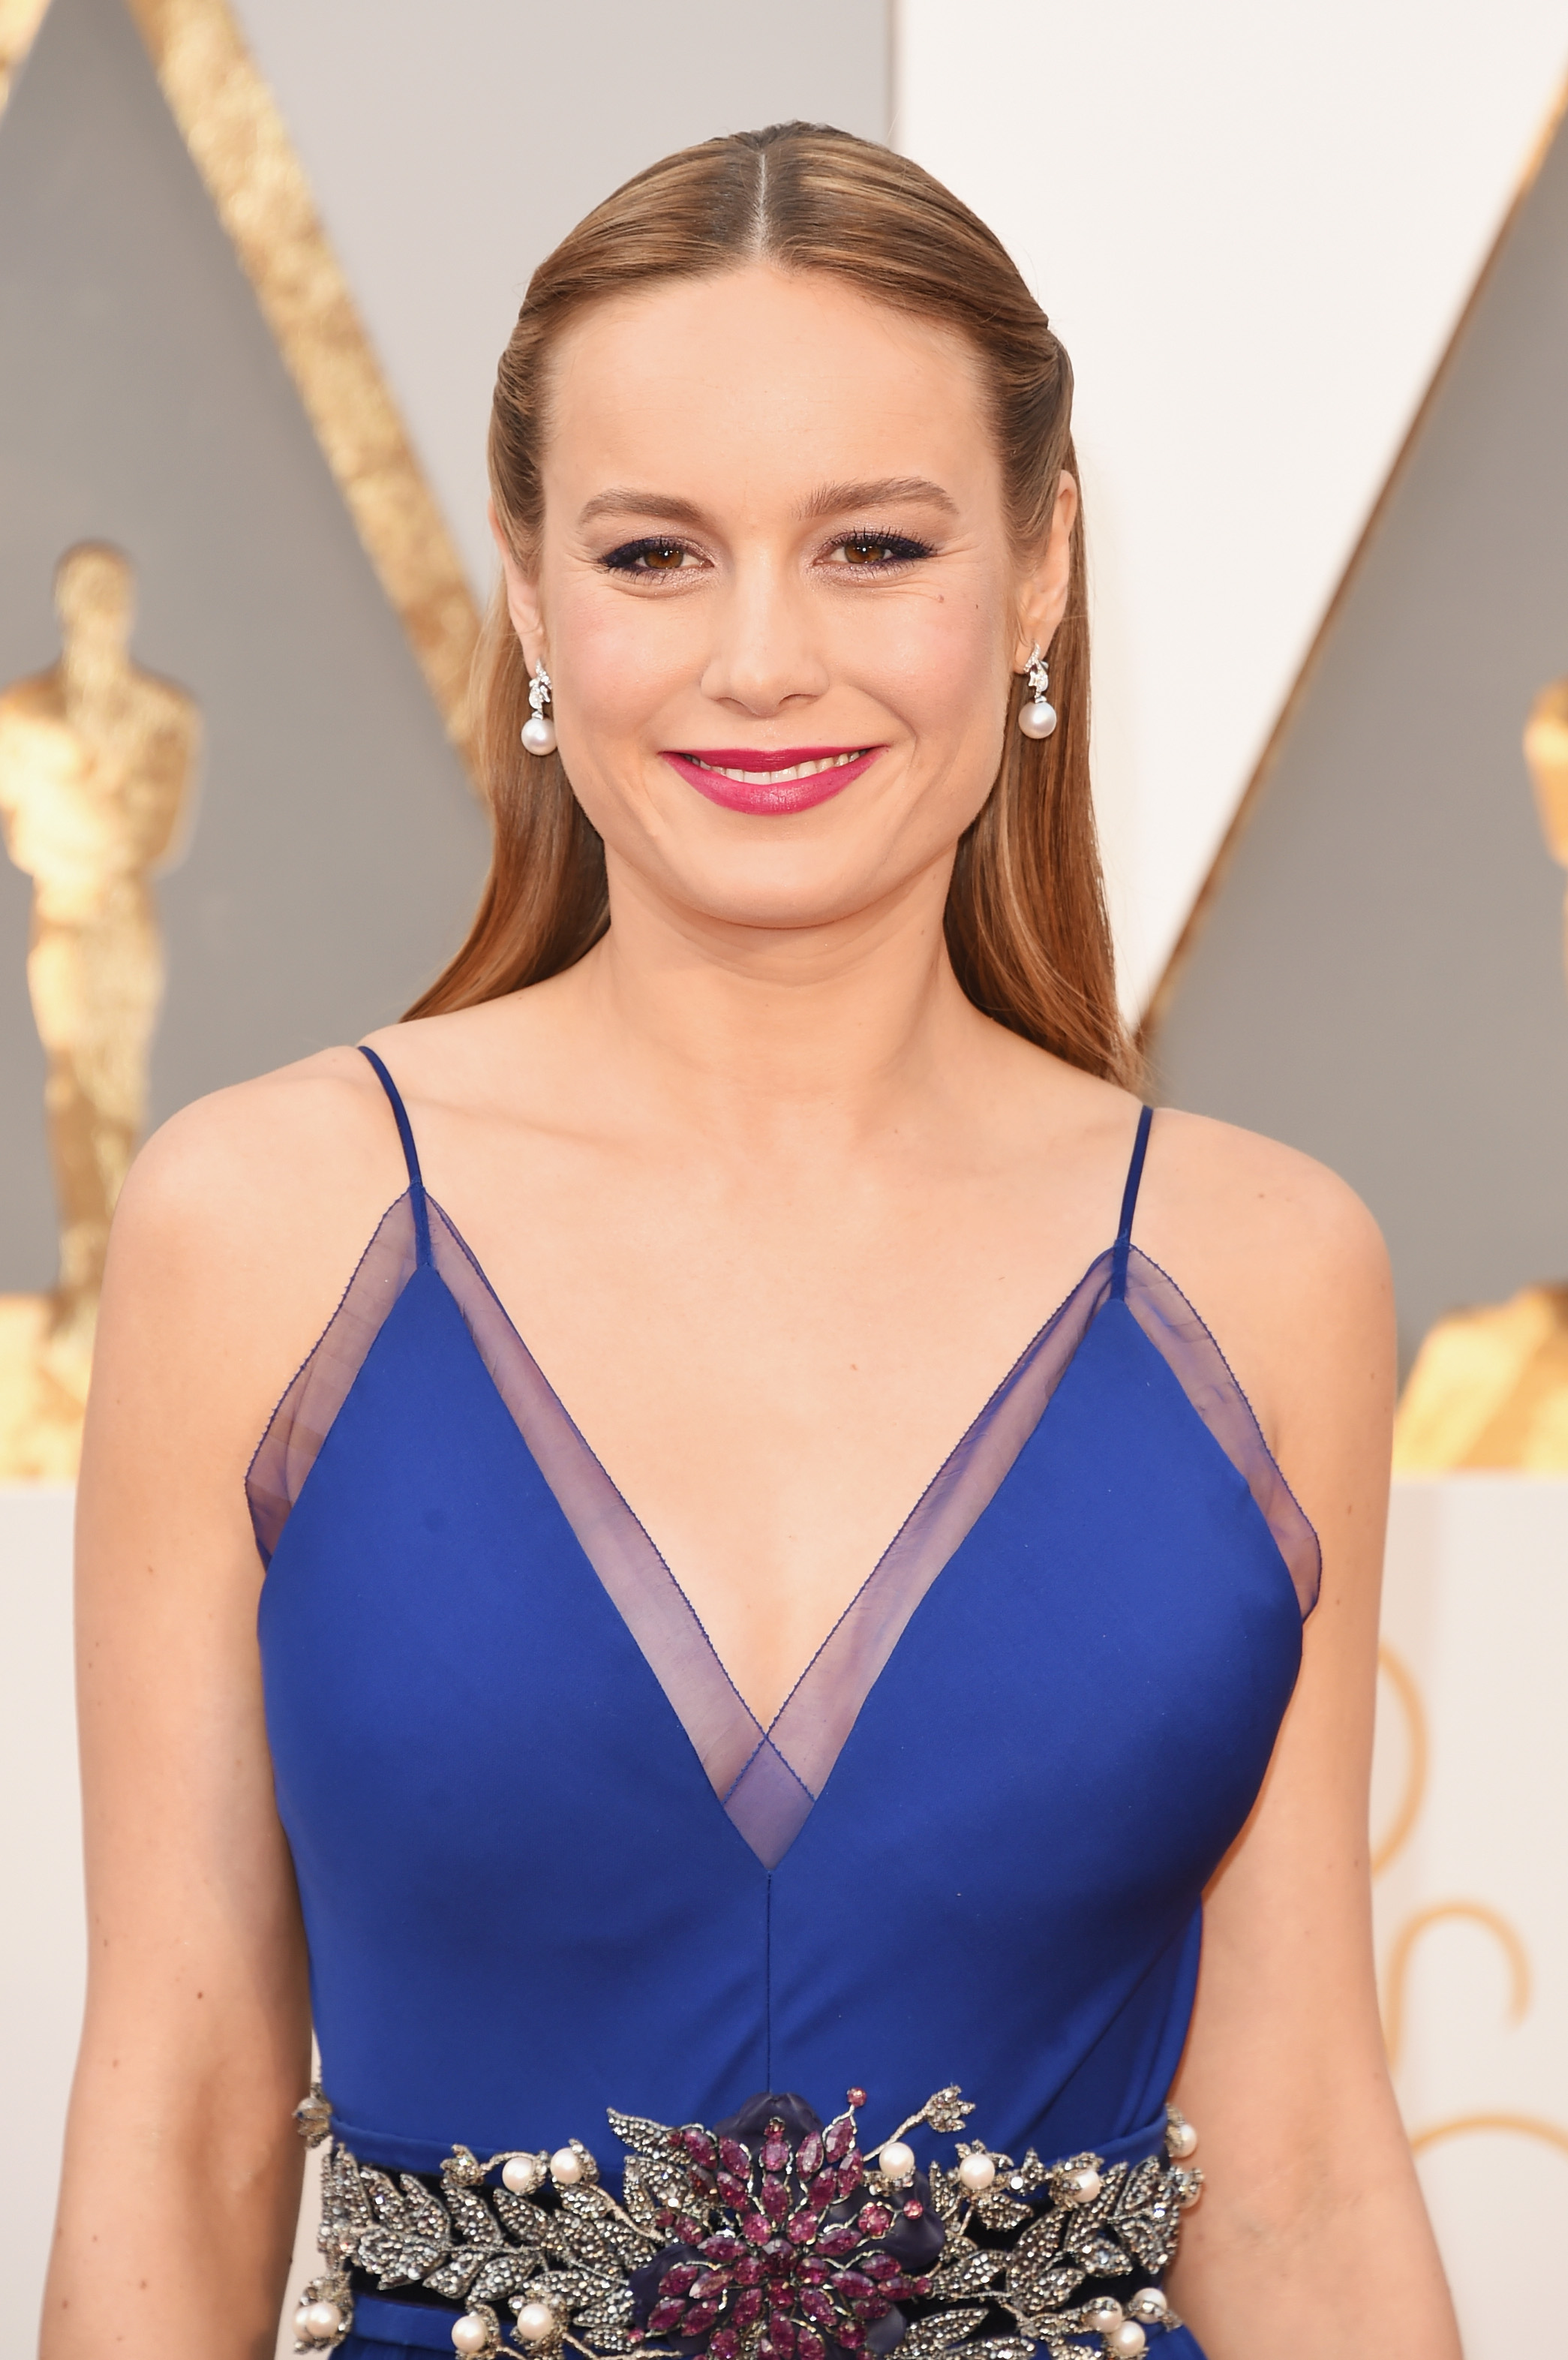 2016 Top 10 Smb Business Issues It Priorities It: Brie Larson Is A Best Actress Oscars 2016 Winner For Room